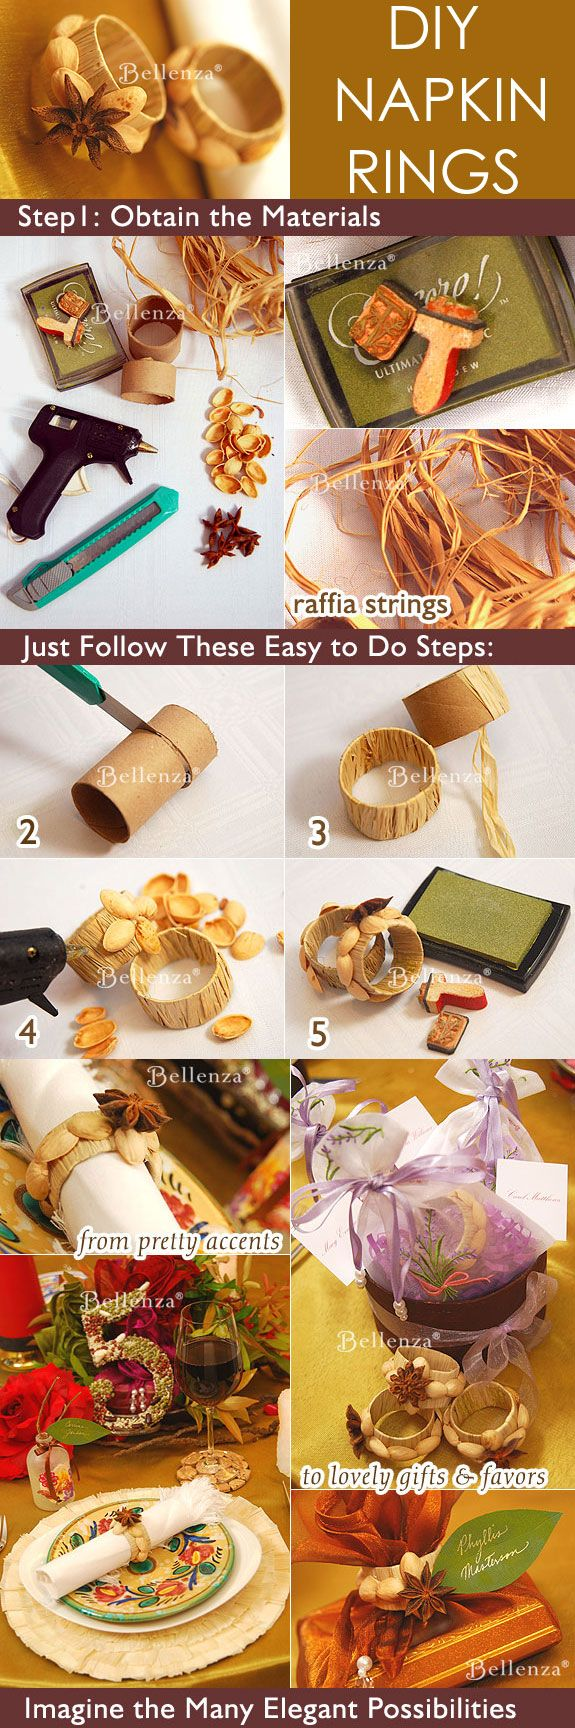 DIY napkin rings - made with raffia, pistachio shells, and star anise